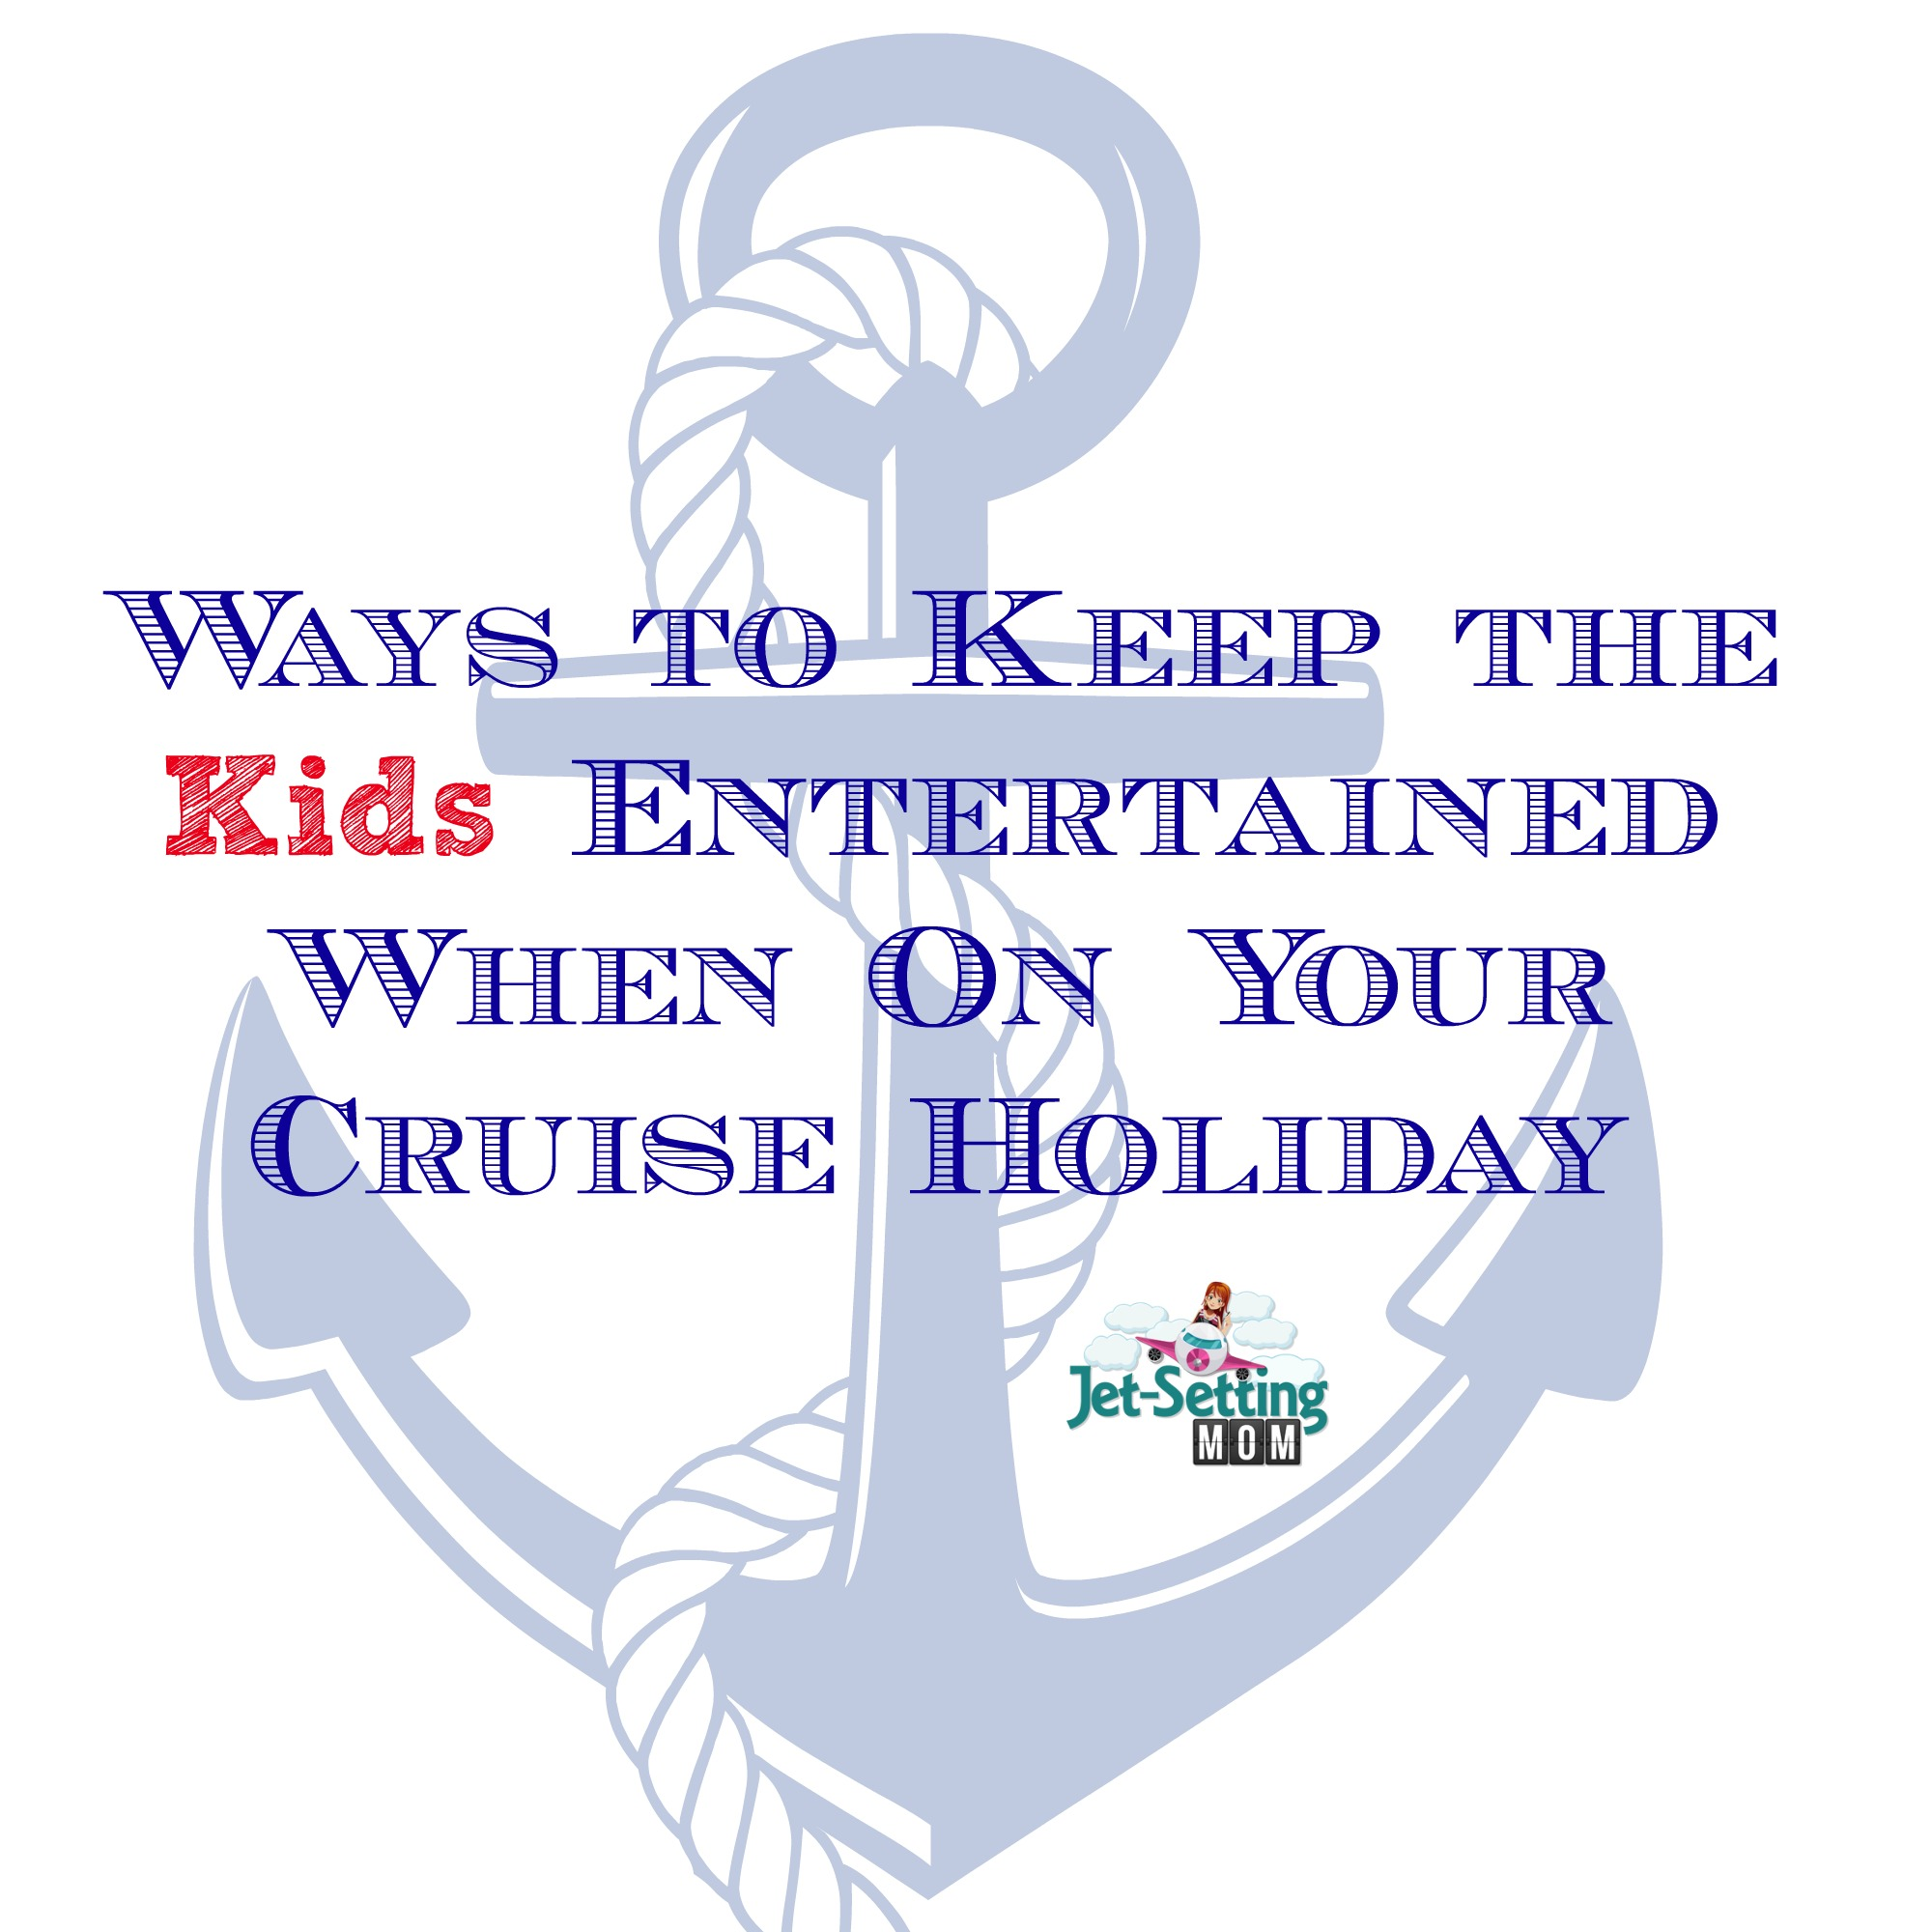 Ways To Keep The Kids Entertained When On Your Cruise Holiday